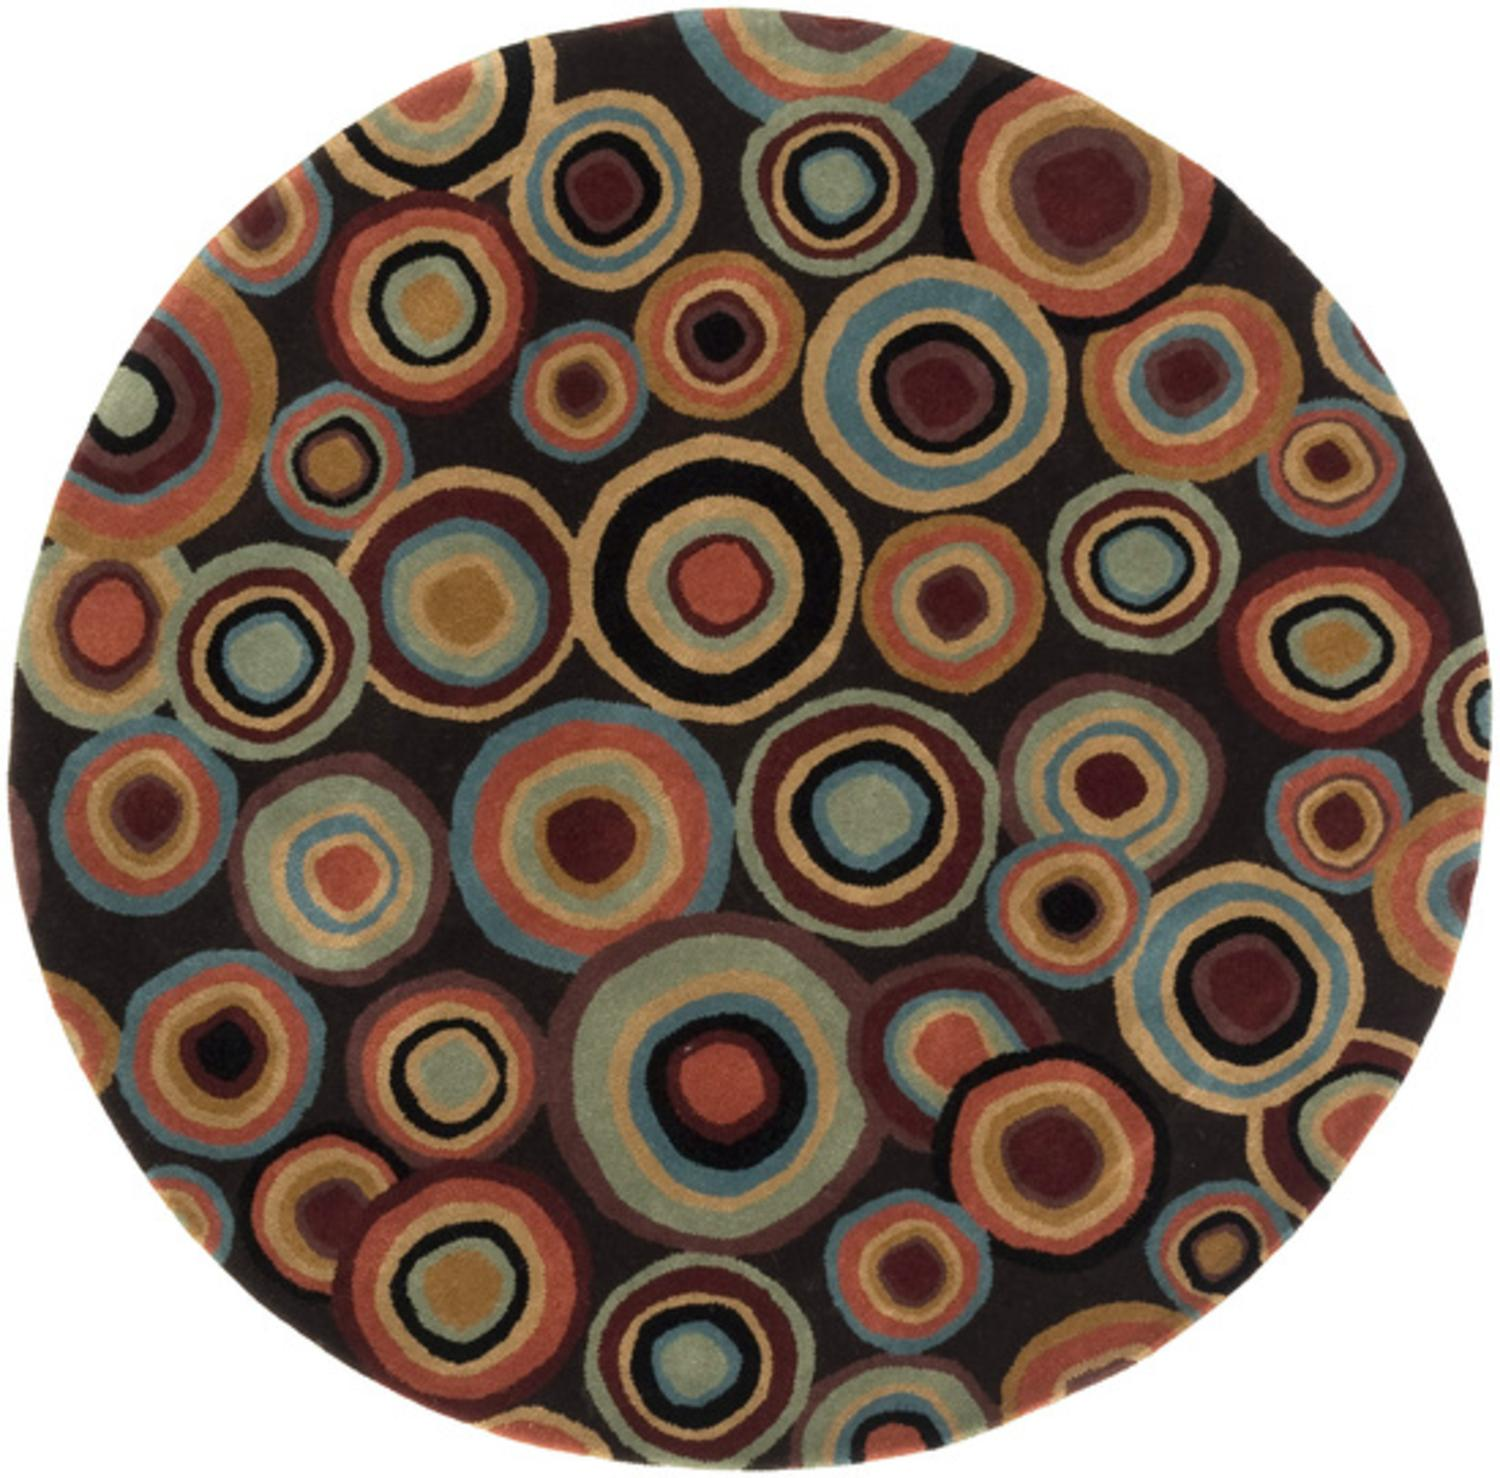 6' Seeing Spots Cameo Blue and Plum Wine Hand Tufted Wool Round Area Throw Rug